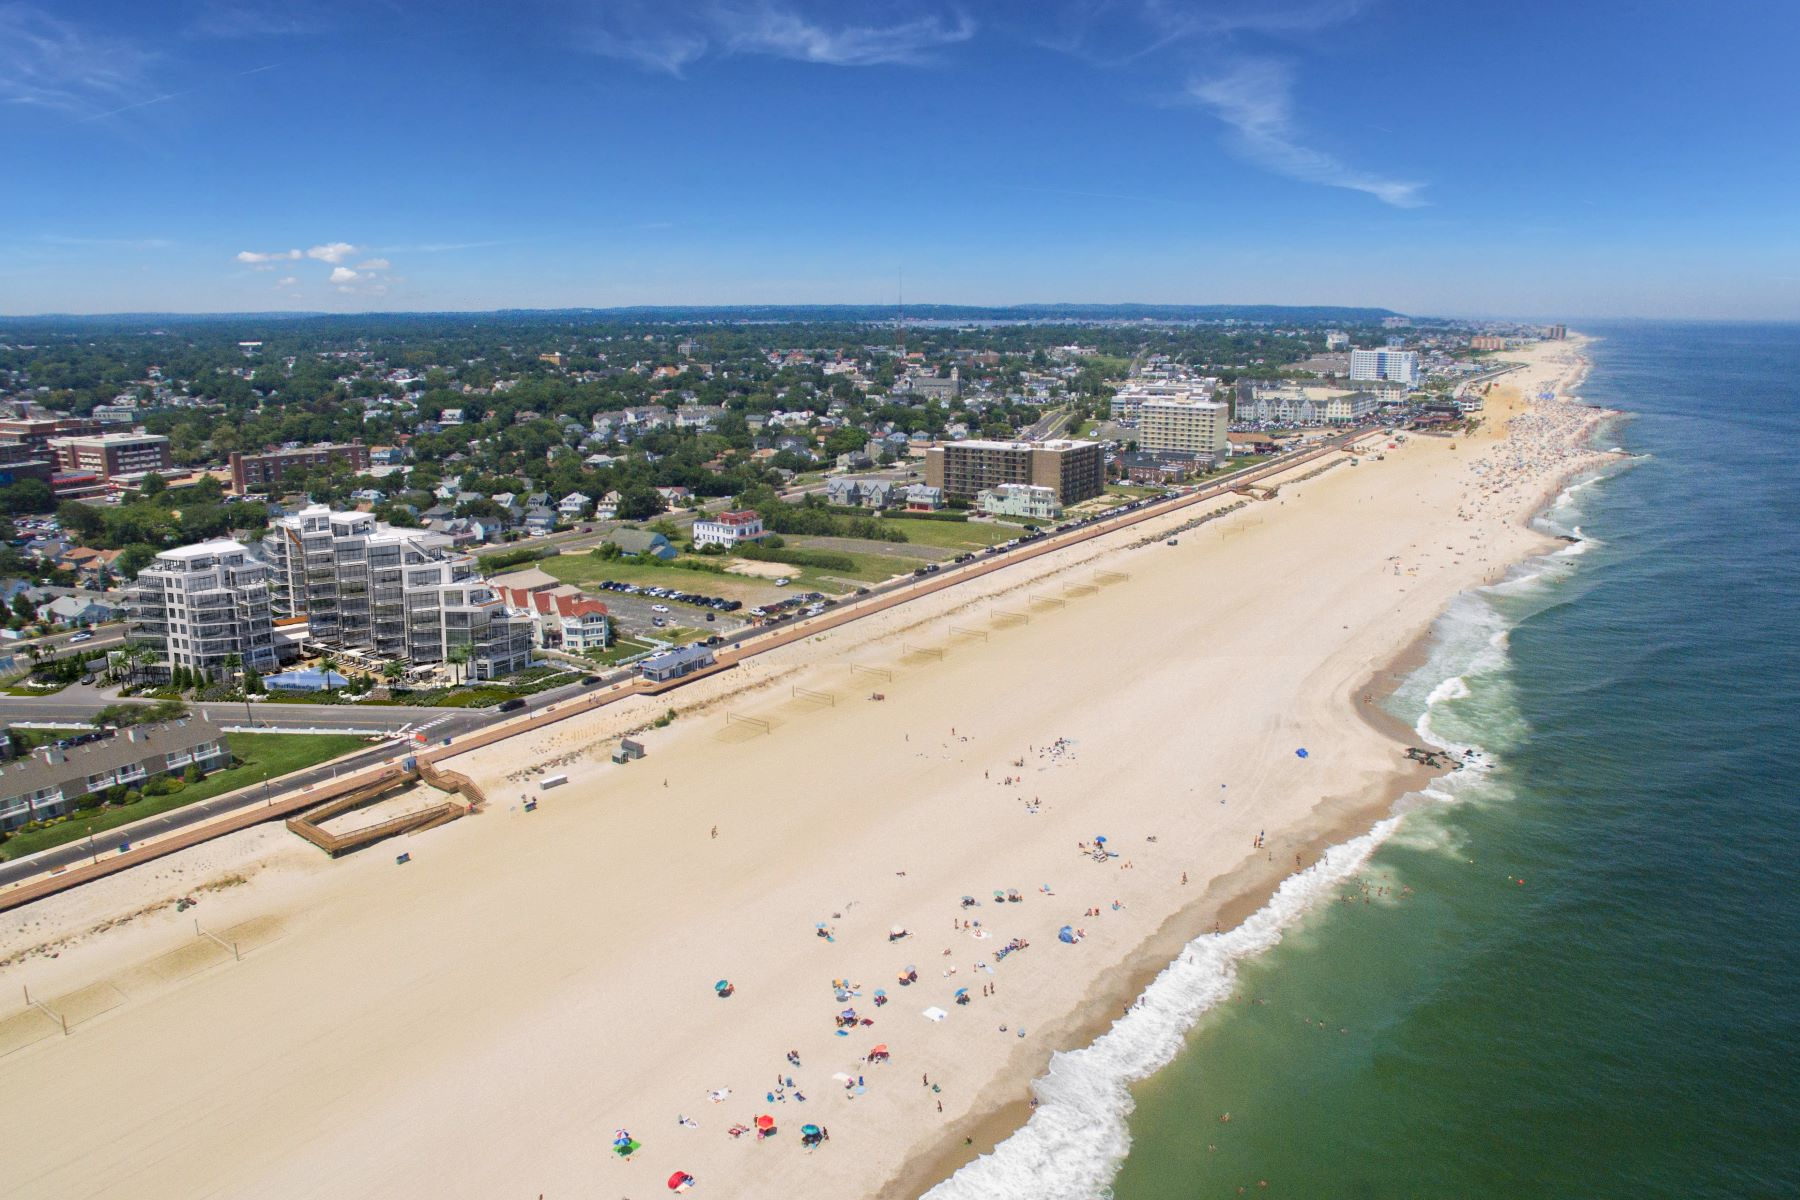 Condominiums للـ Sale في South Beach at Long Branch 350 Ocean Avenue 701, Long Branch, New Jersey 07740 United States